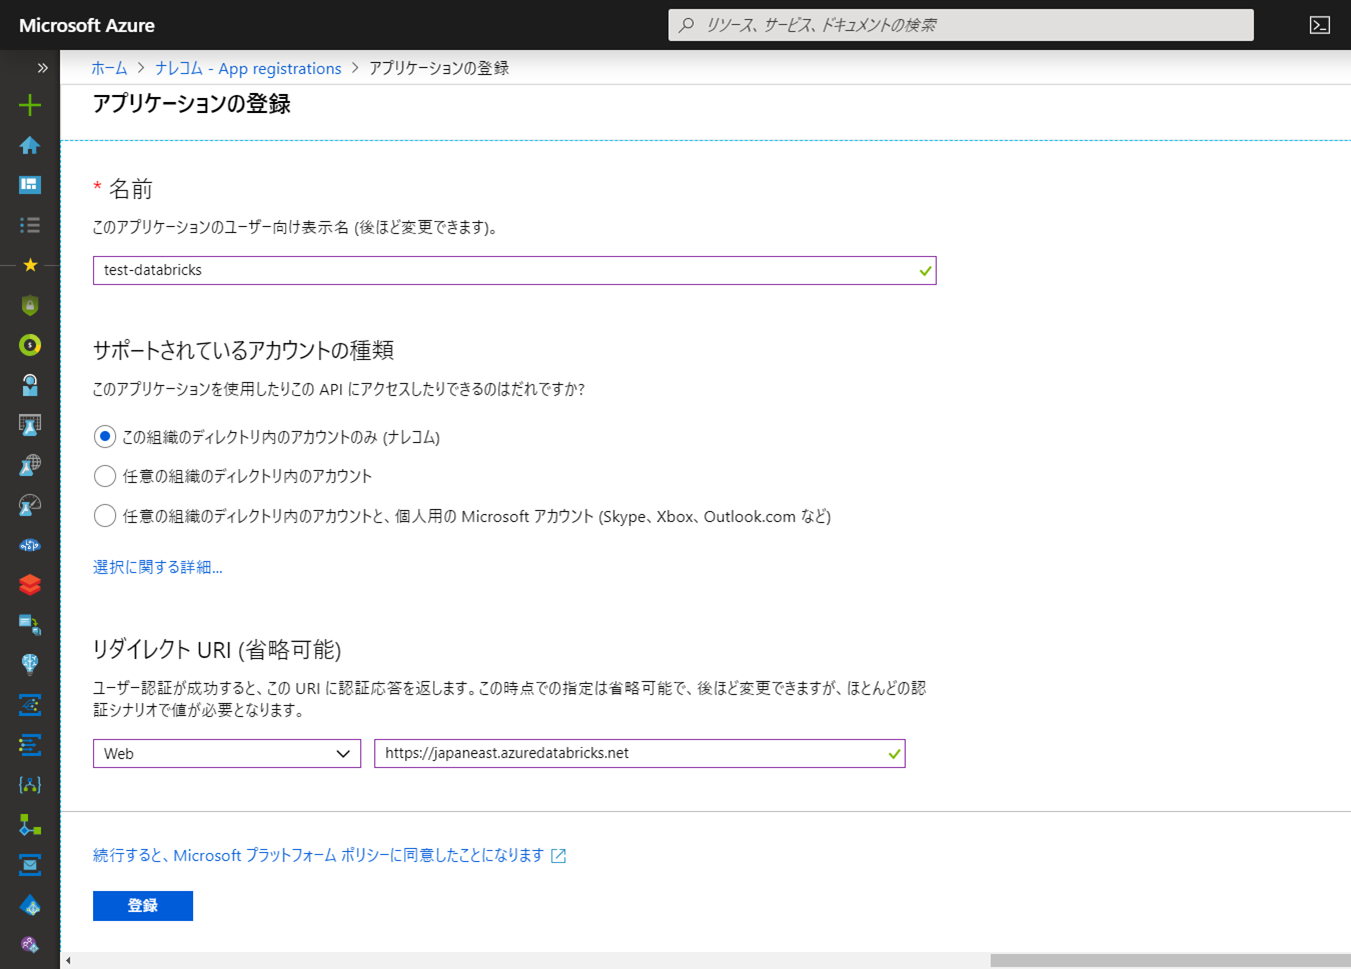 img03-0103.png